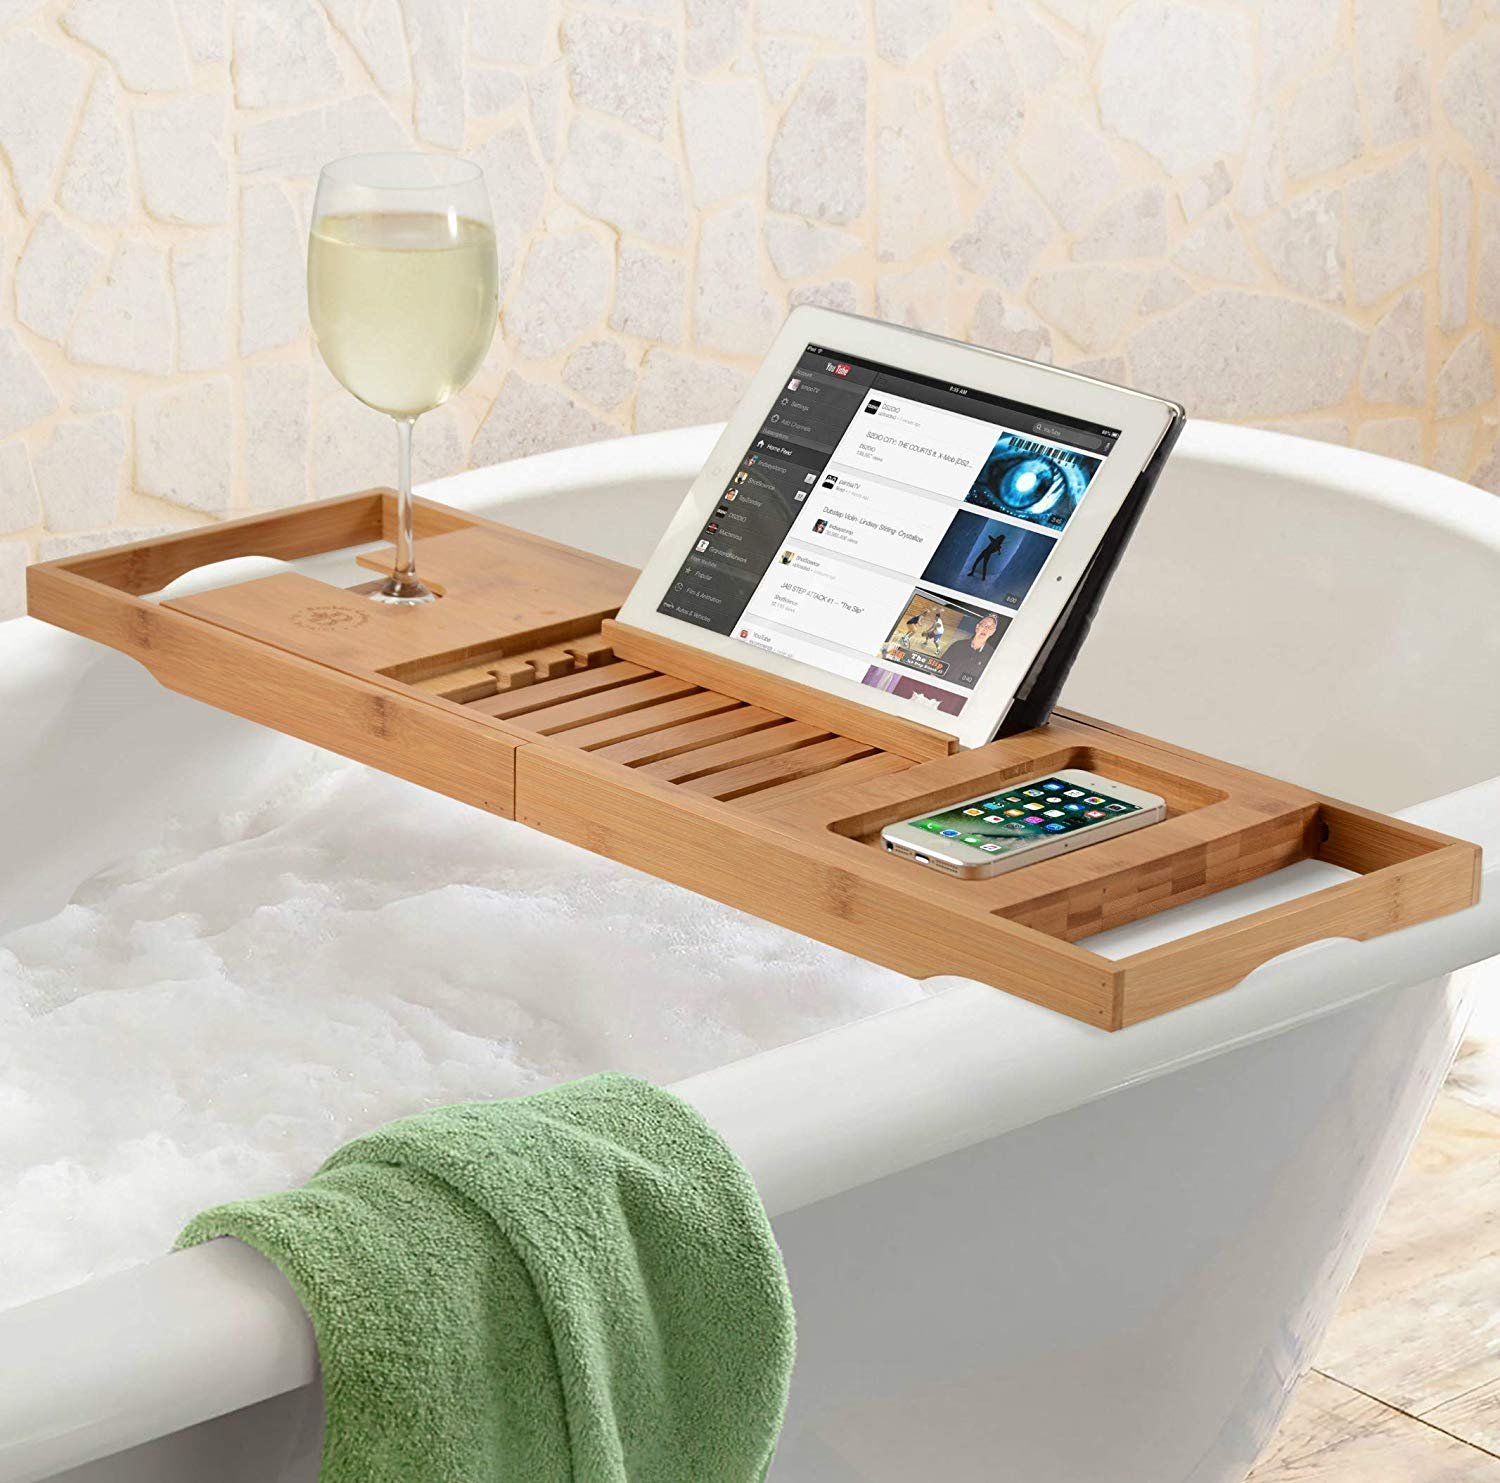 A bamboo bathtub tray over a tub holding an iPad and glass of wine.